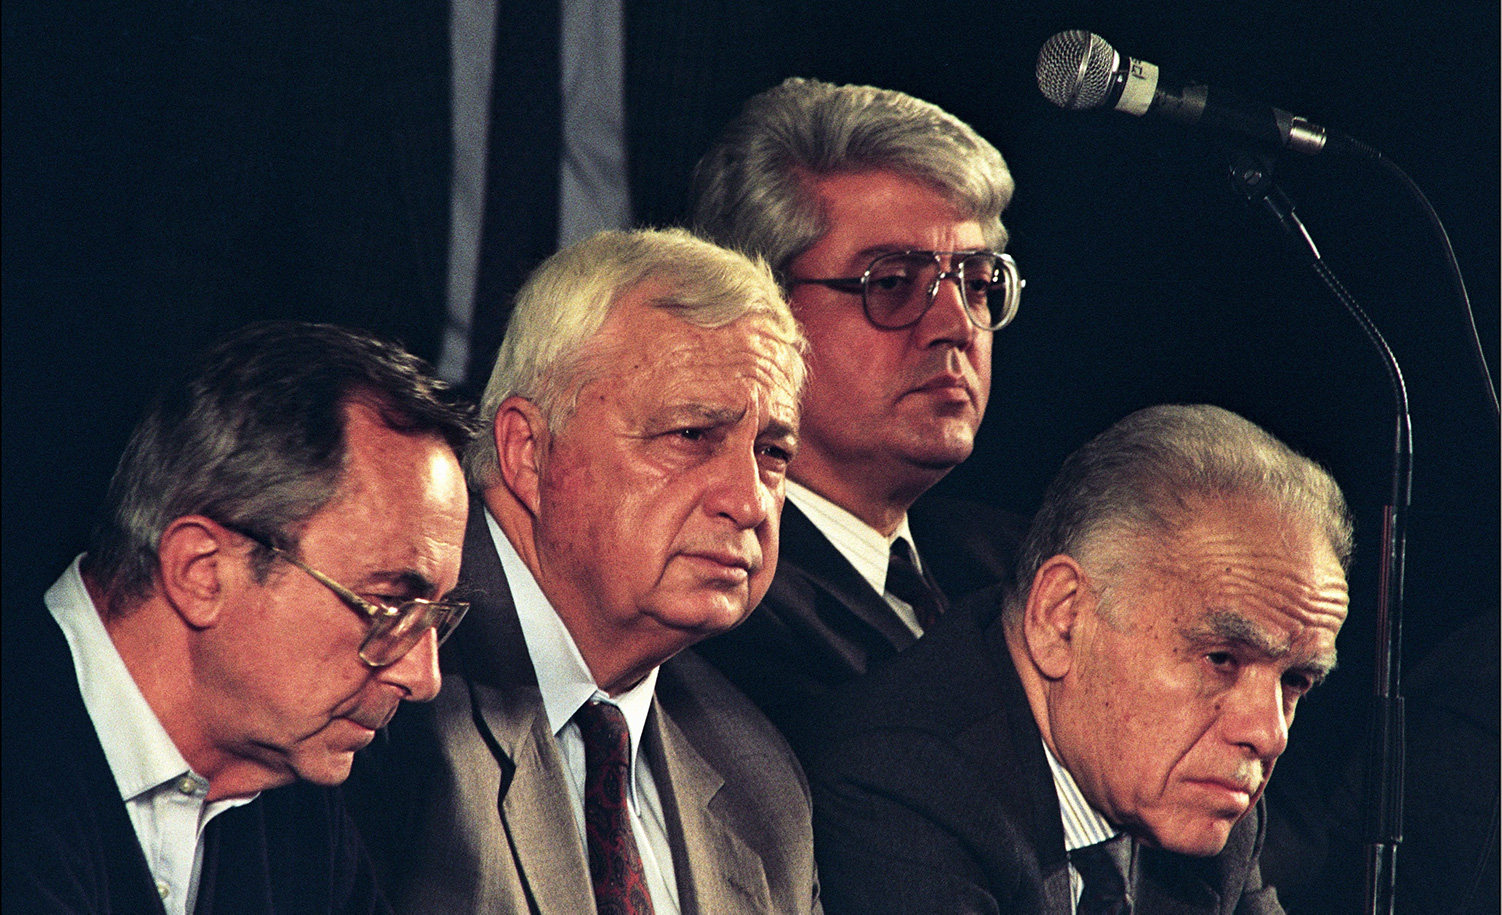 Moshe Arens (left), with Ariel Sharon, David Levy, and Yitzhak Shamir on February 10, 1992 in Israel. Esaias BAITEL/Gamma-Rapho via Getty Images.